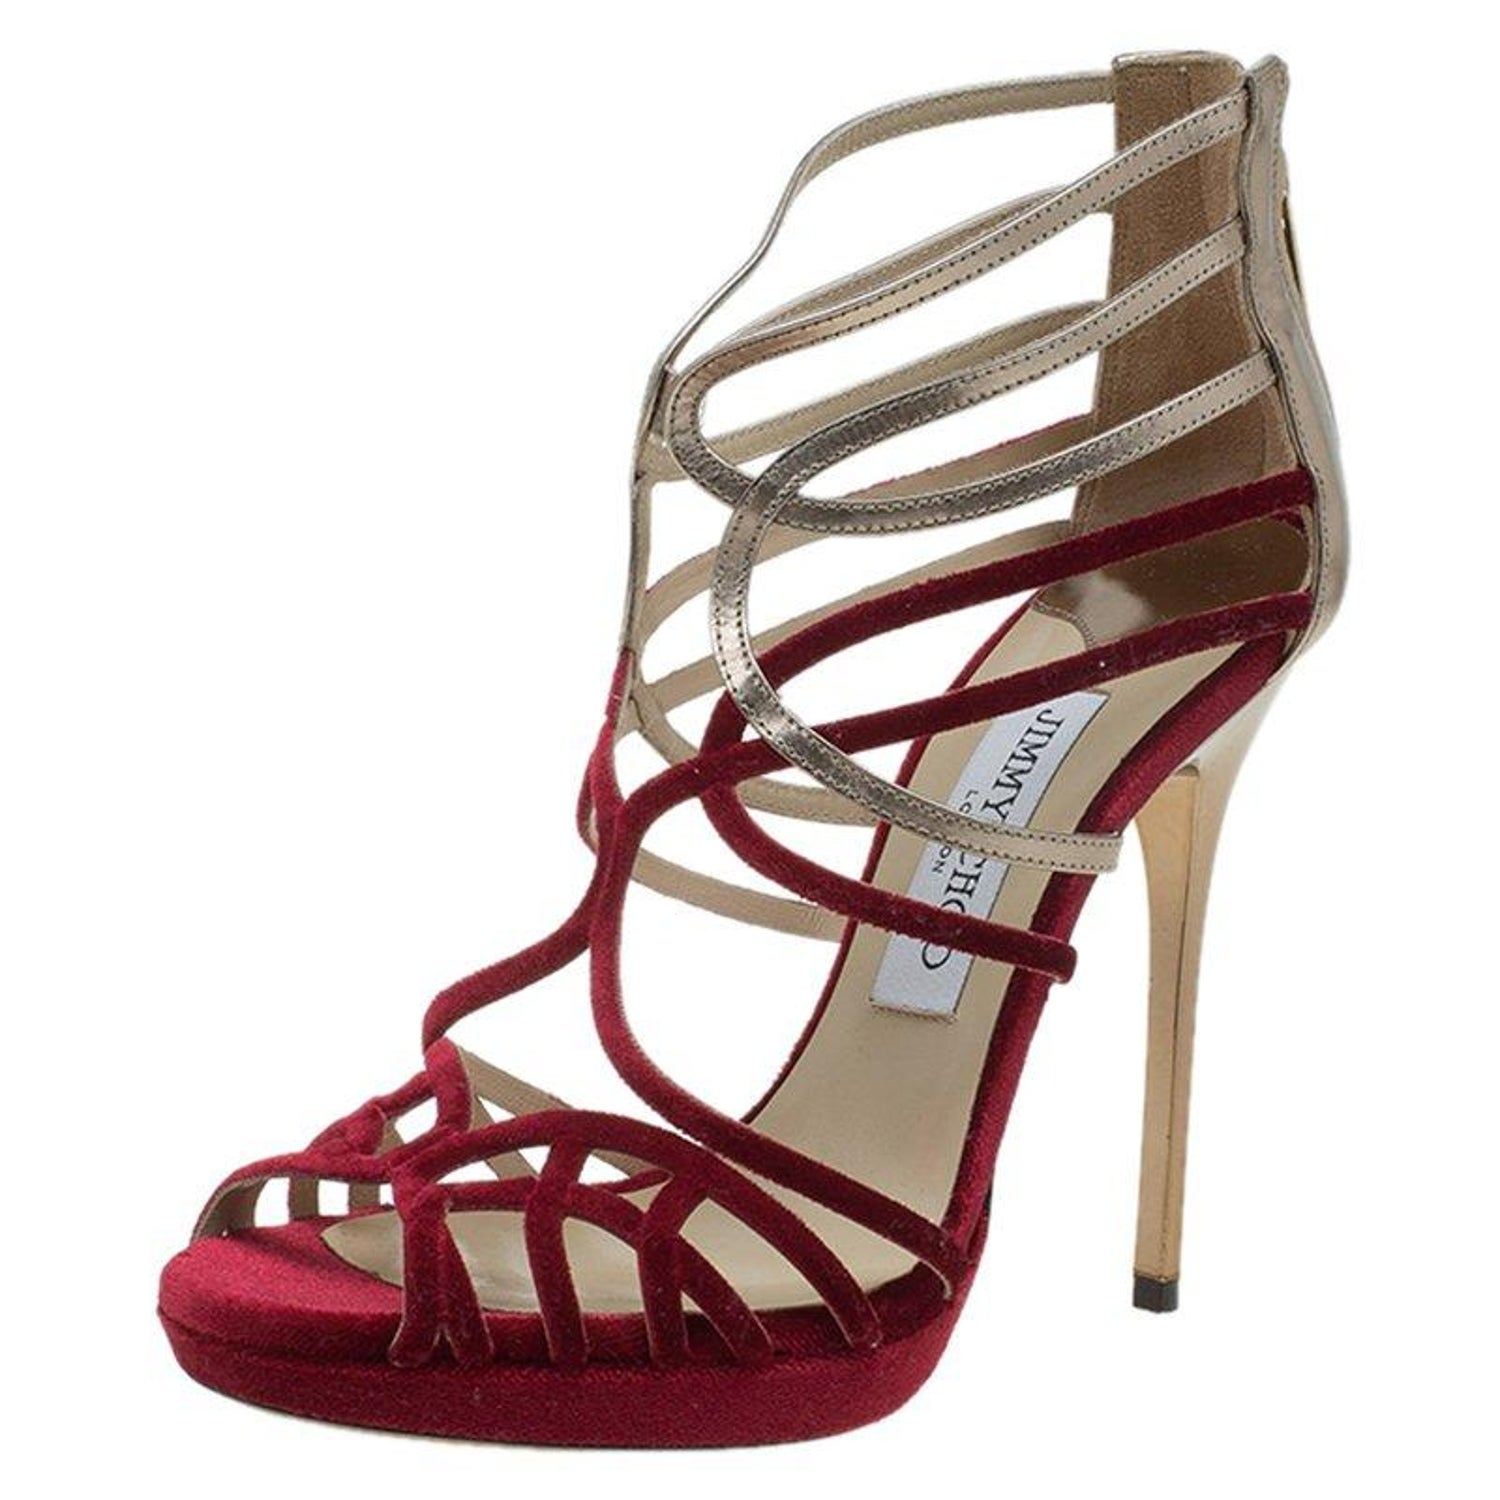 02b4b2d1886e Jimmy Choo Red Velvet and Gold Leather Maury Strappy Sandals Size 37 at  1stdibs